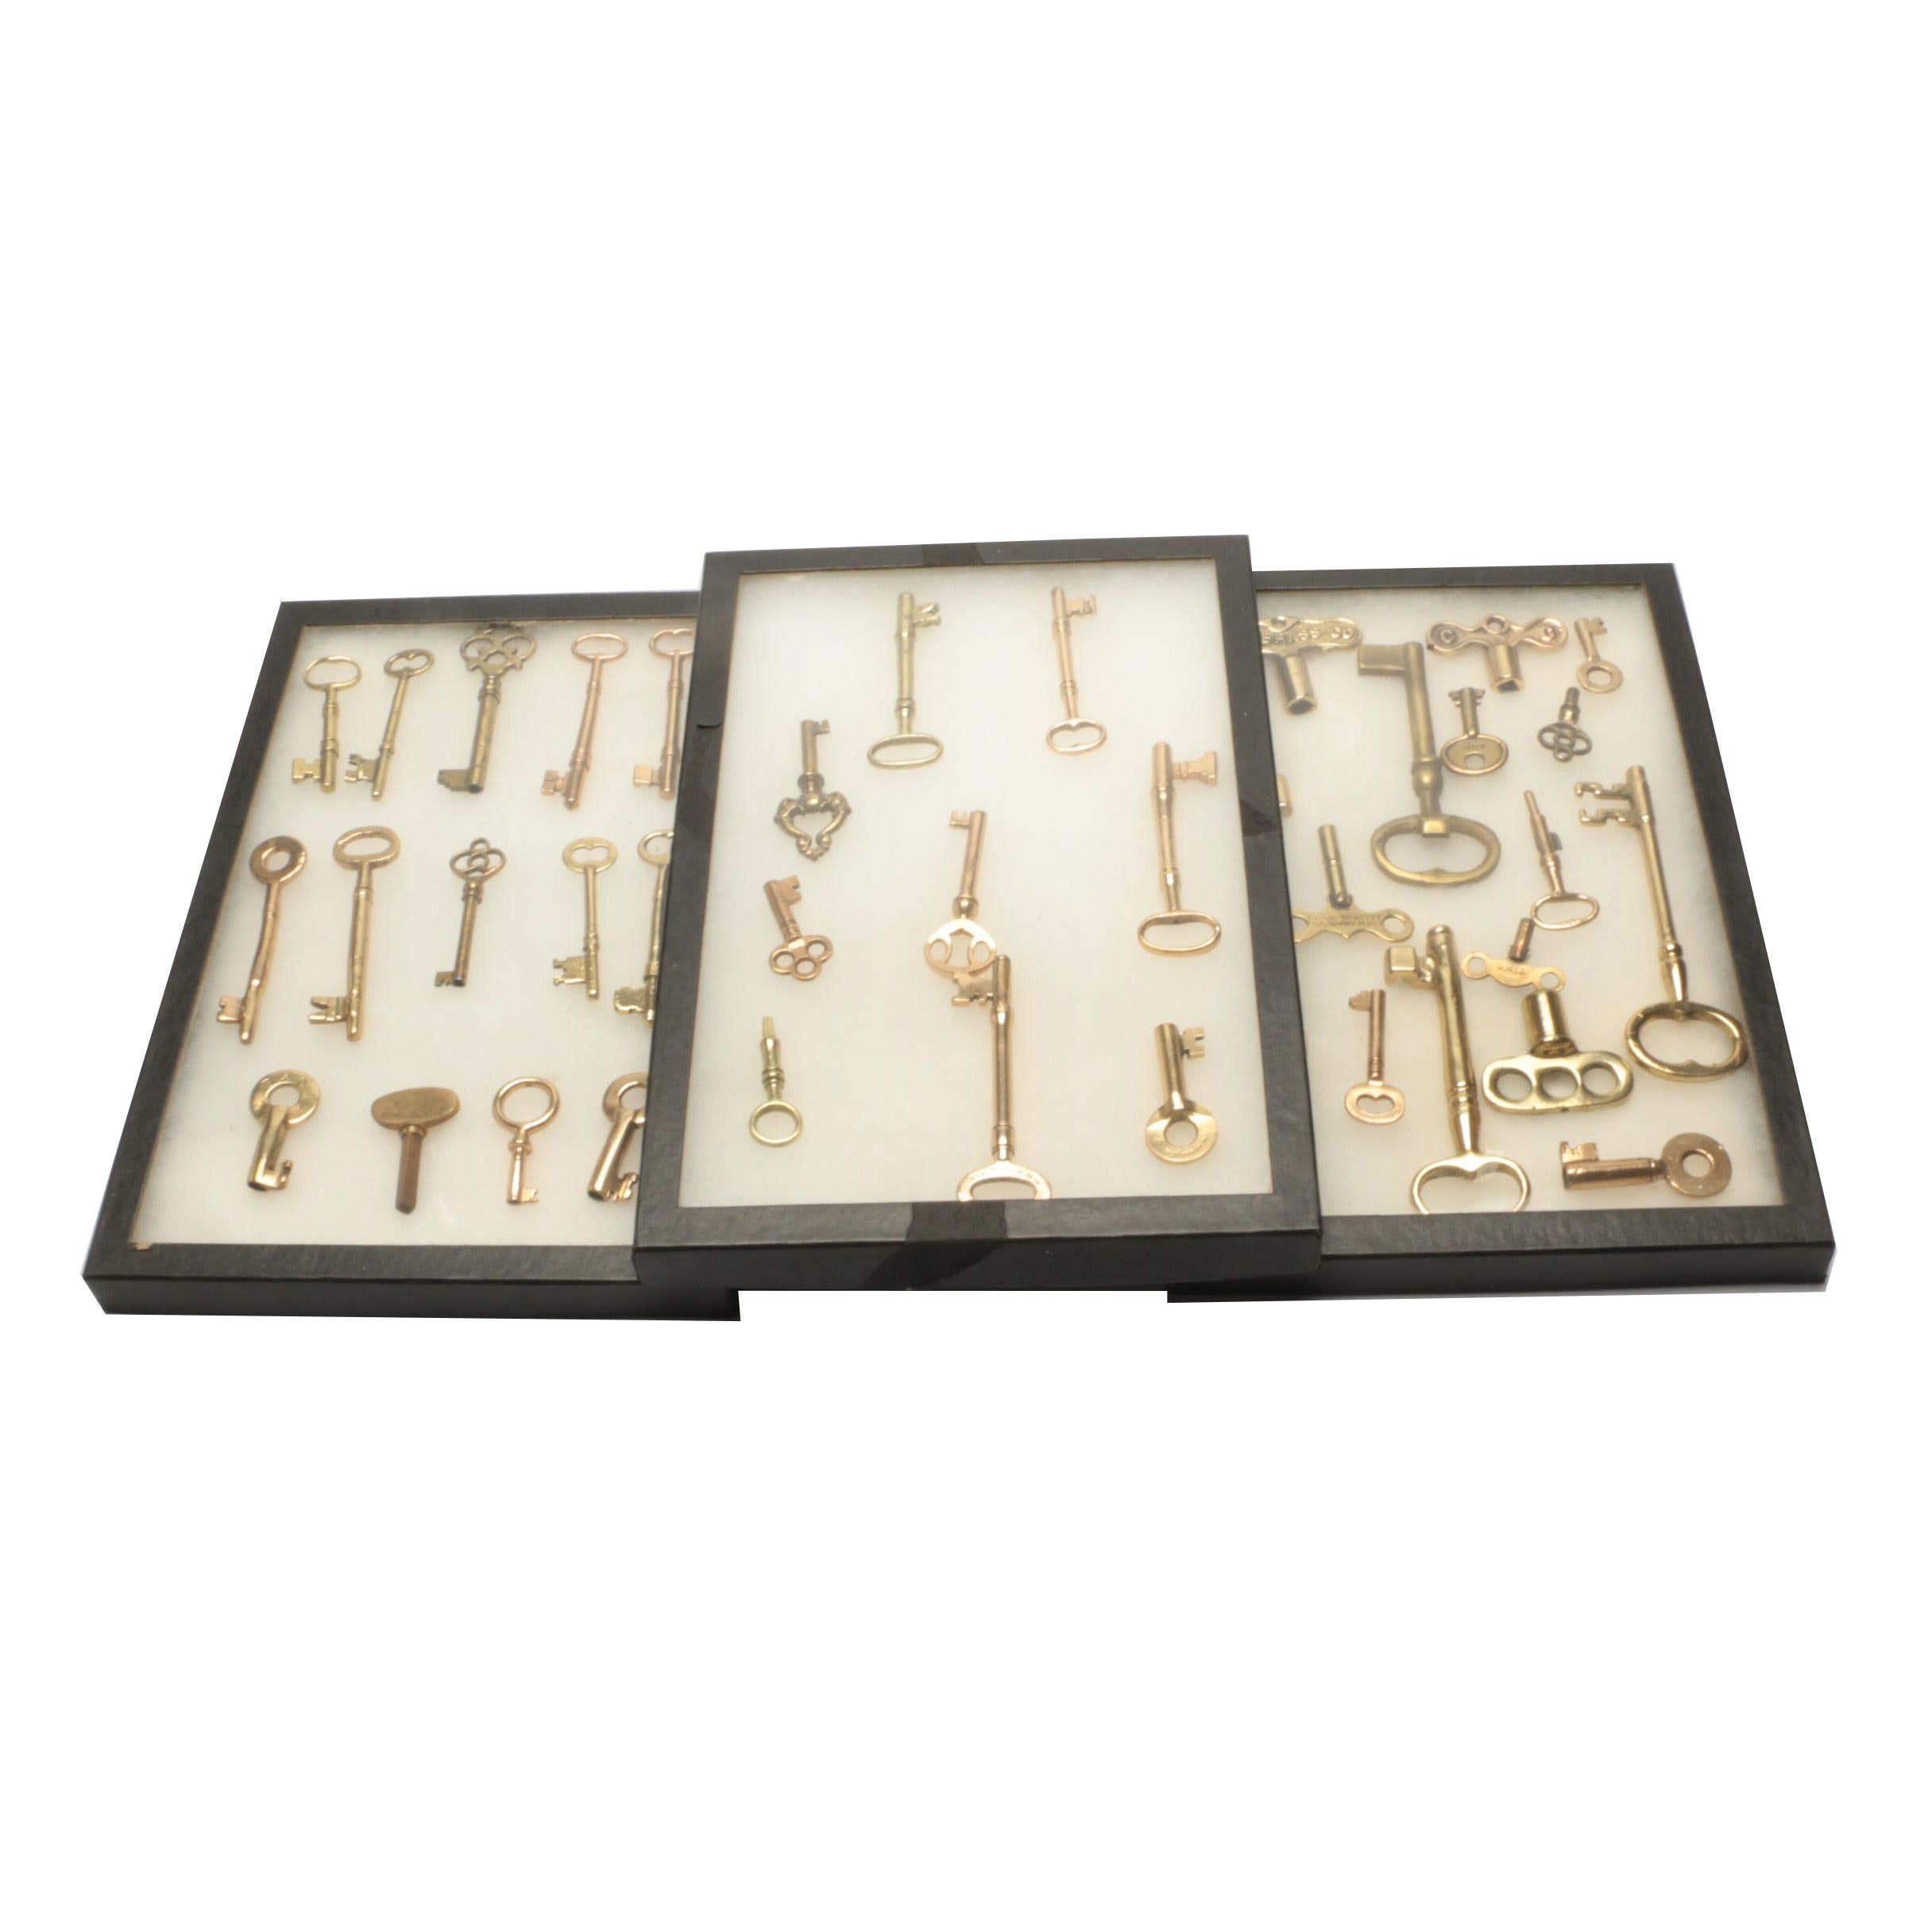 Gold Tone and Brass Key Assortment in Display Cases